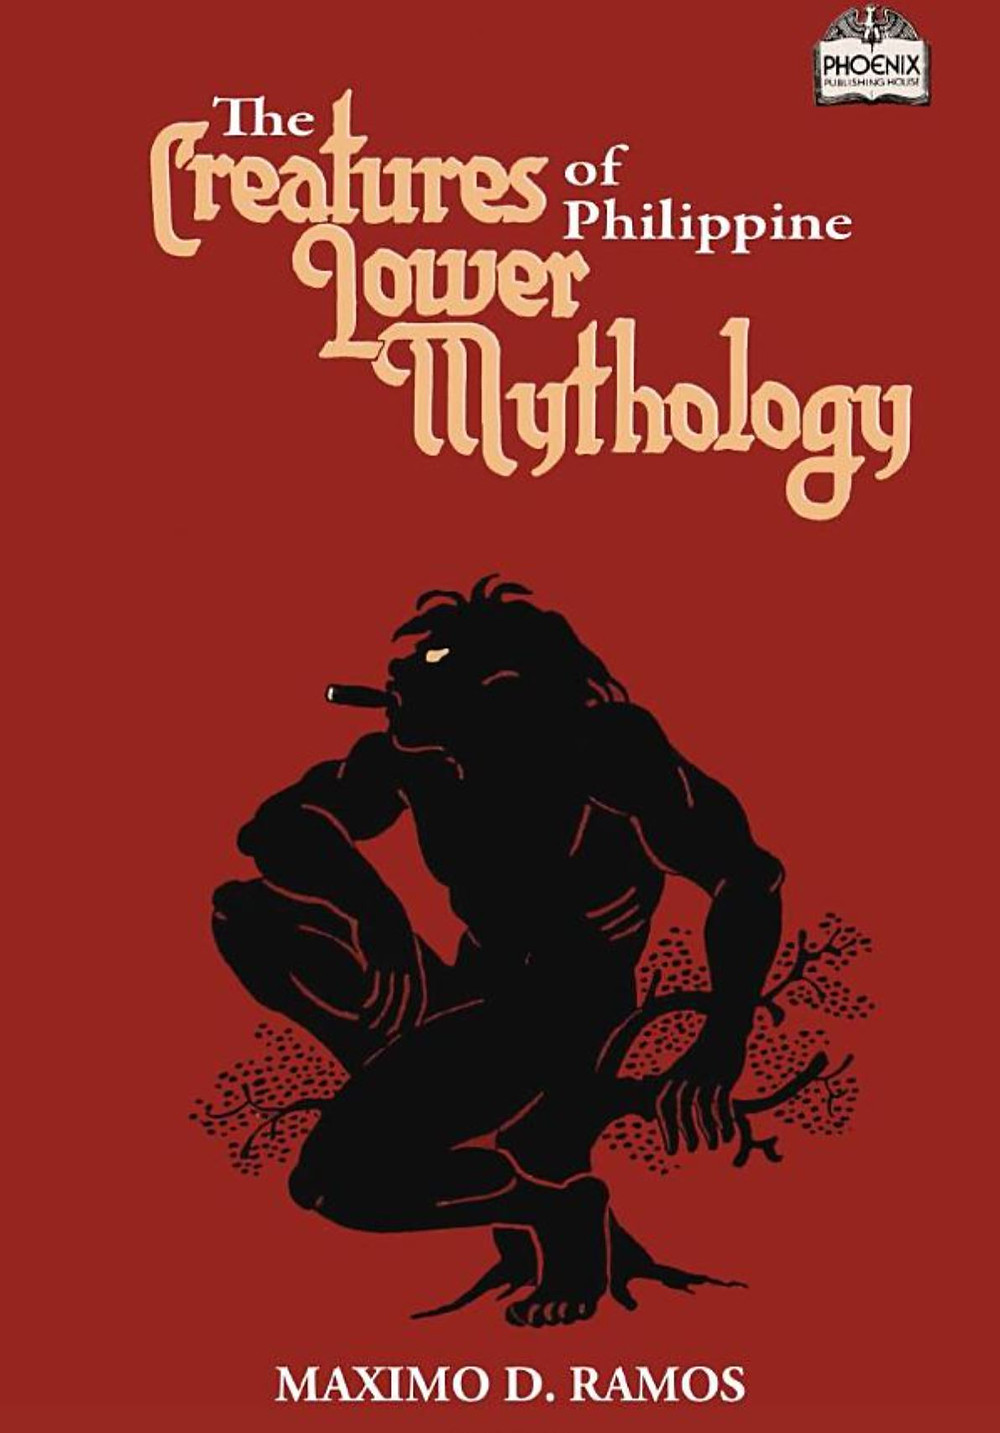 The Creatures of Philippine Lower Mythology by Maximo D. Ramos